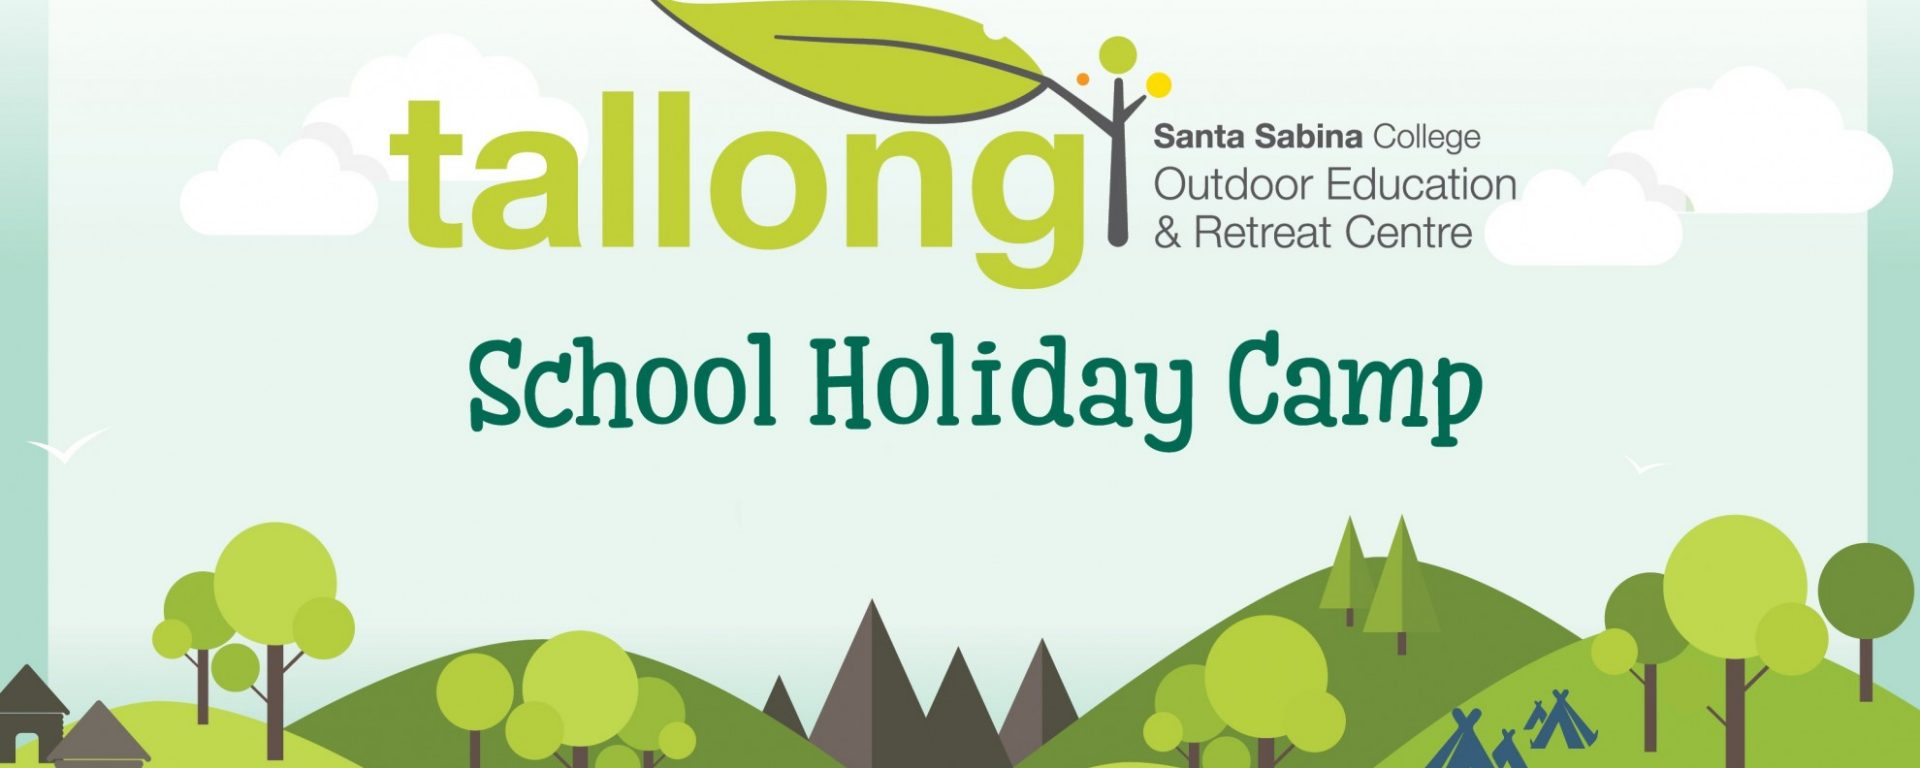 Tallong Holiday Camp featured image